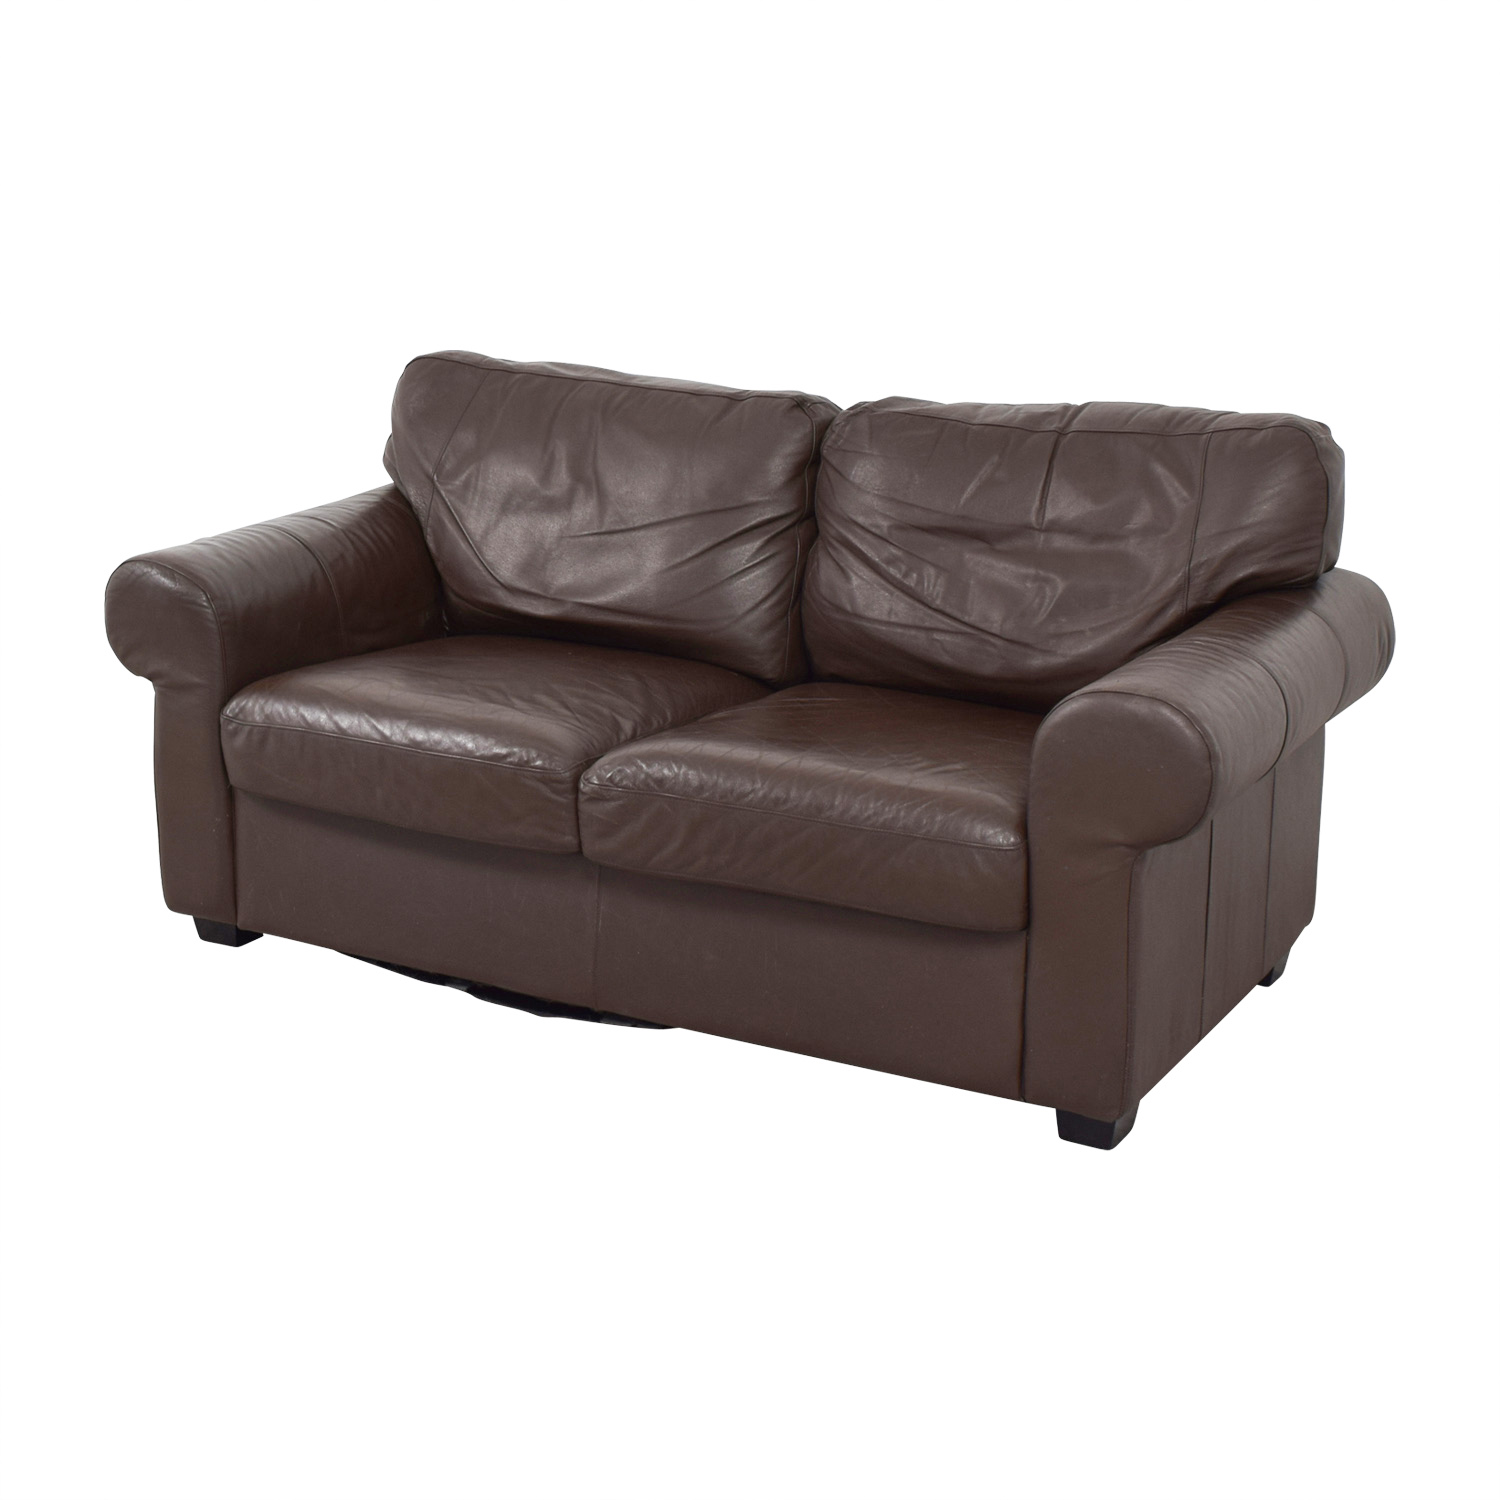 72 Off Ikea Ikea Timsfors Leather Brown Loveseat Sofas